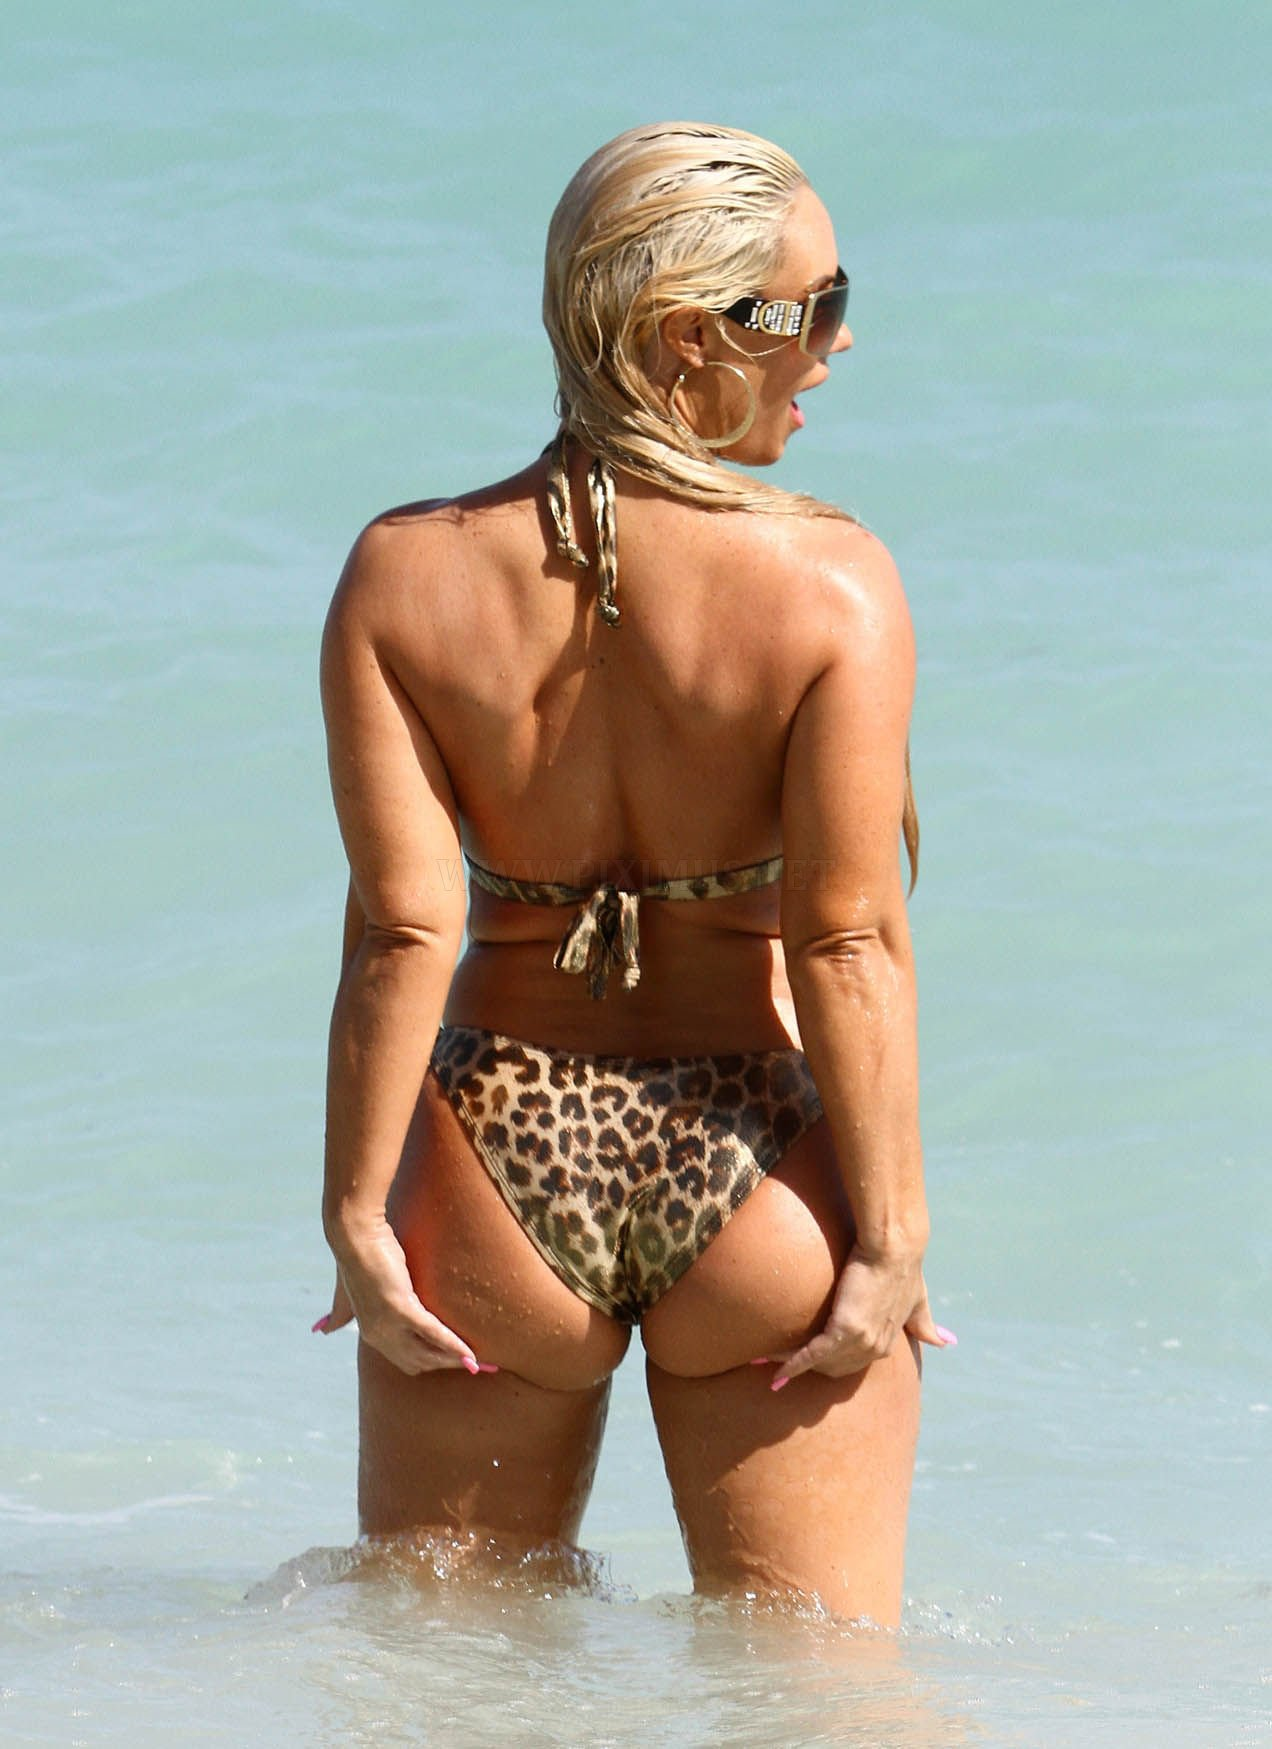 Coco Austin in a Bikini on the Beach